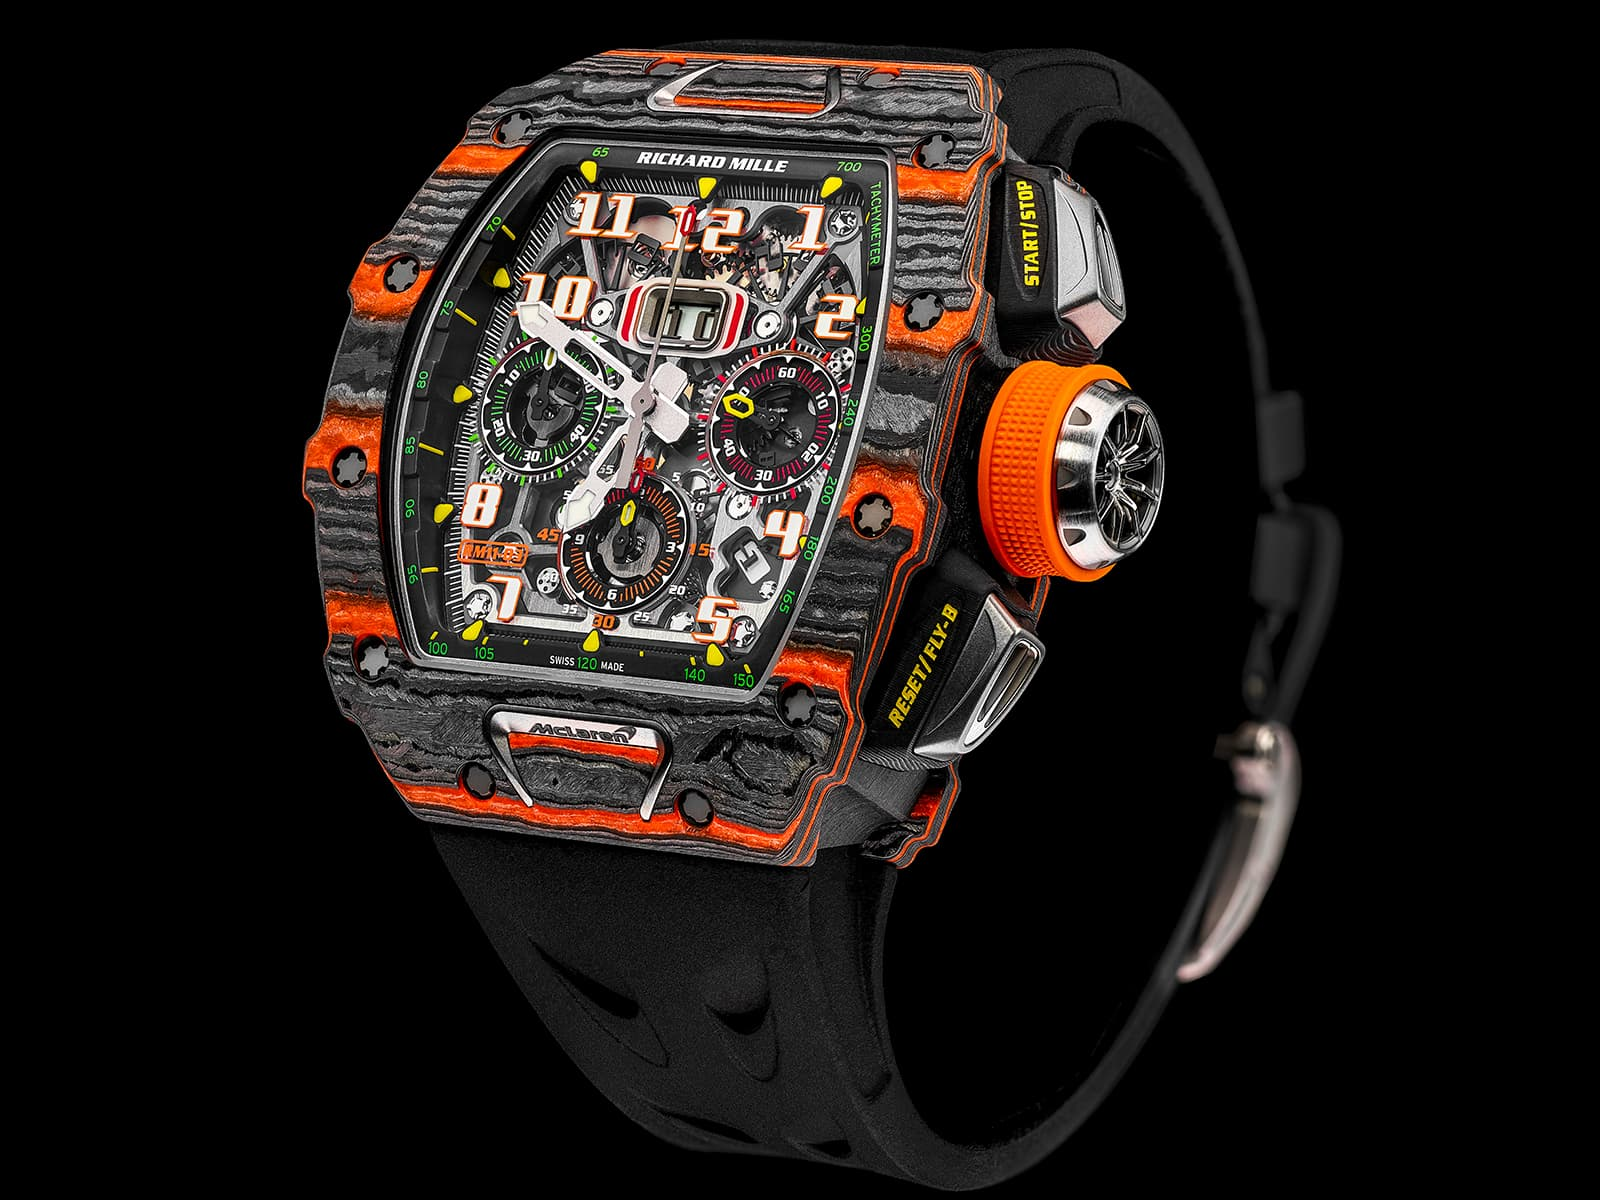 richard-mille-rm-11-03-mcLaren-automatic-flyback-chronograph-.jpg